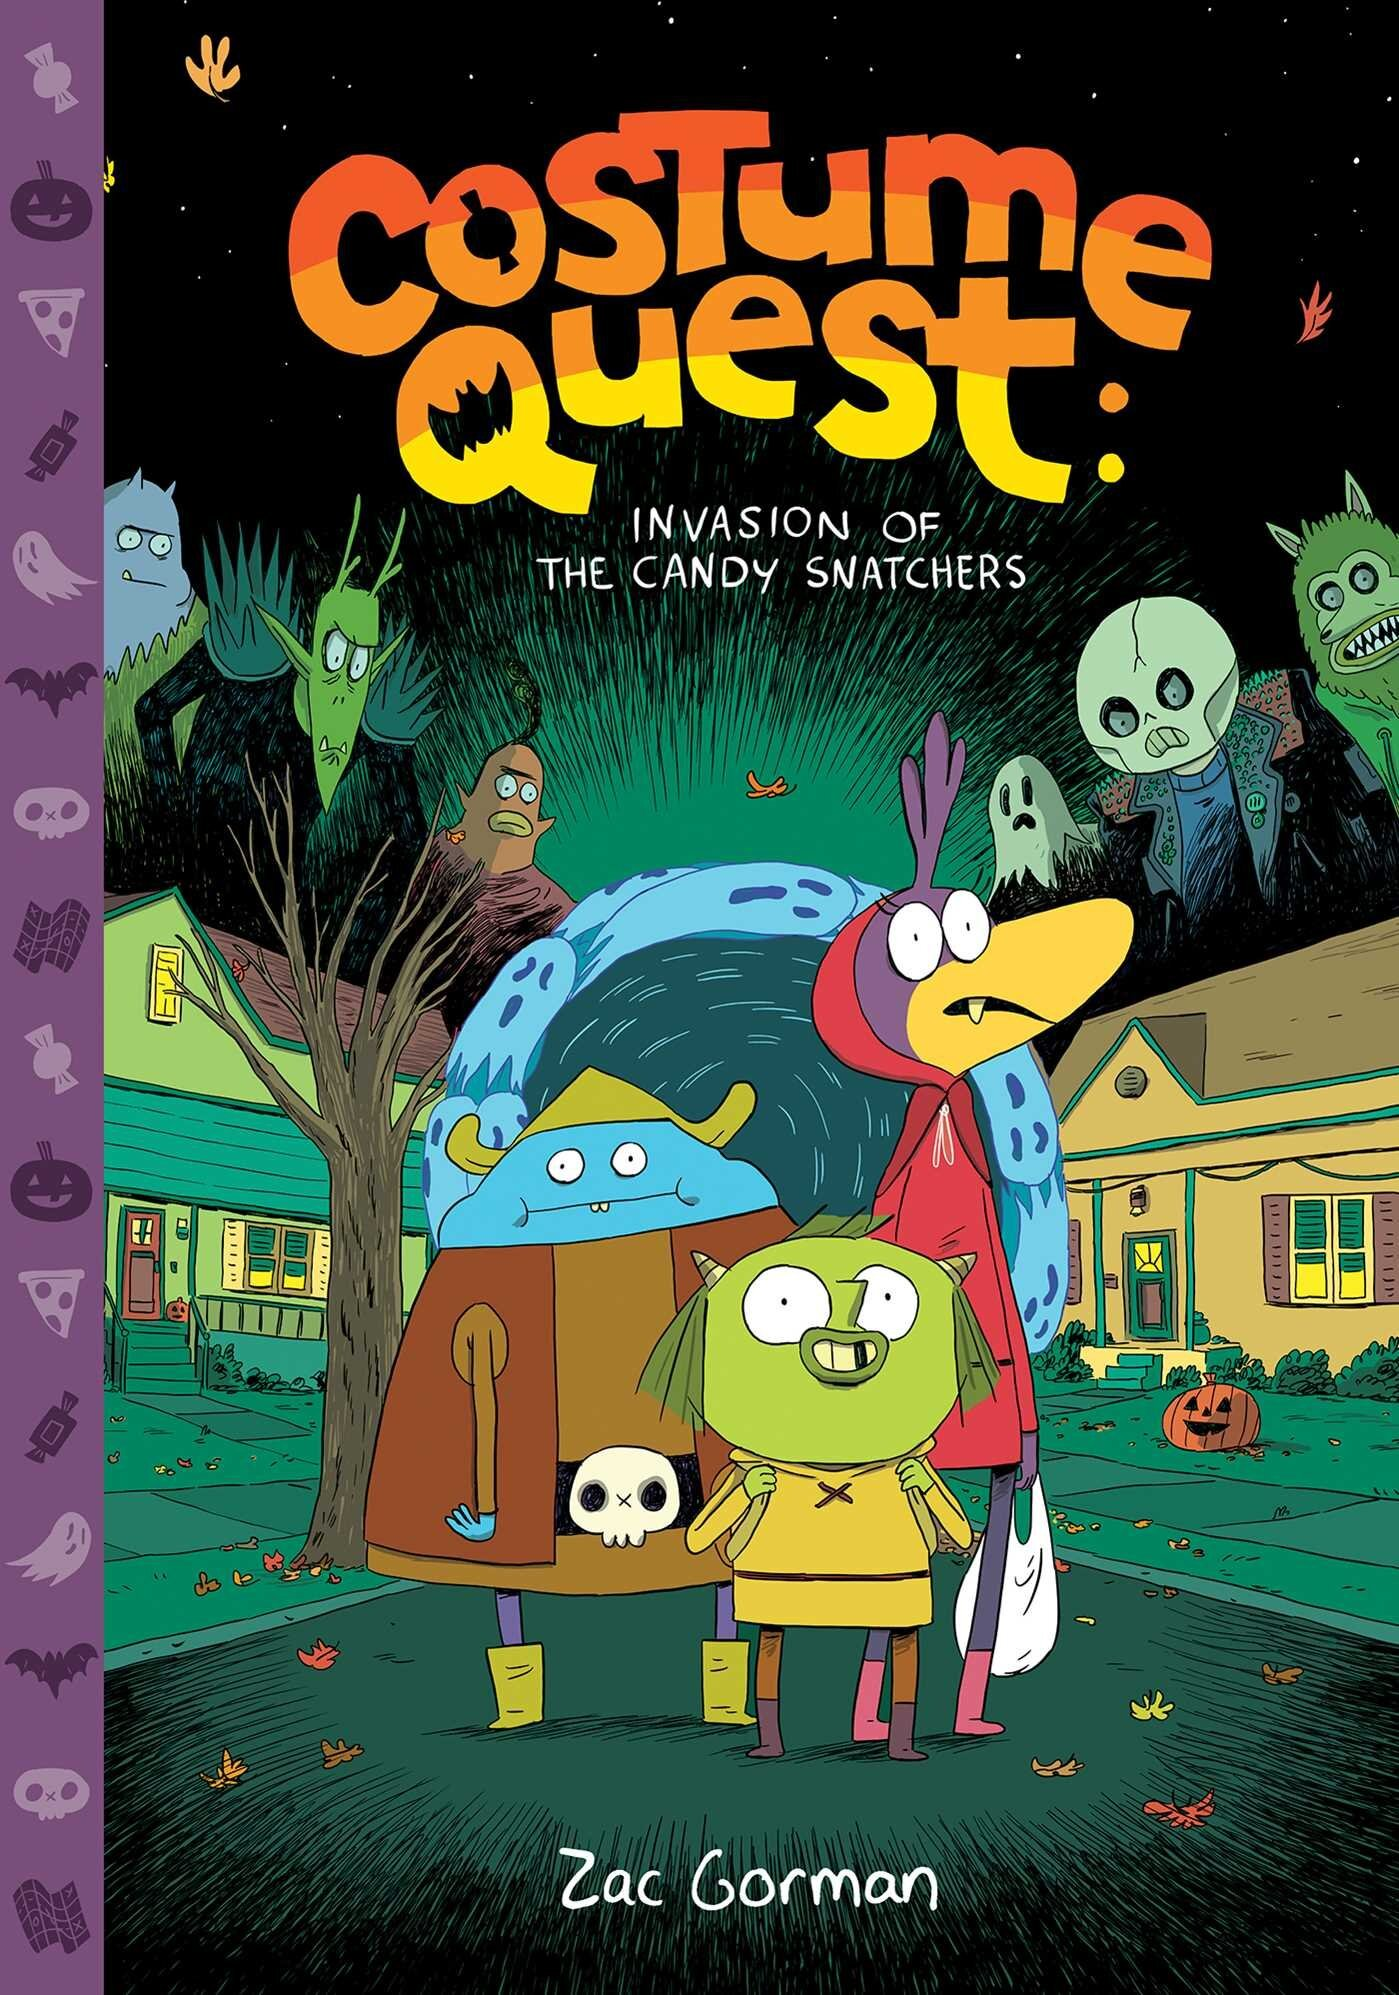 The Best Halloween Picture Books - Costume Quest Invasion of the Candy Snatchers.jpg